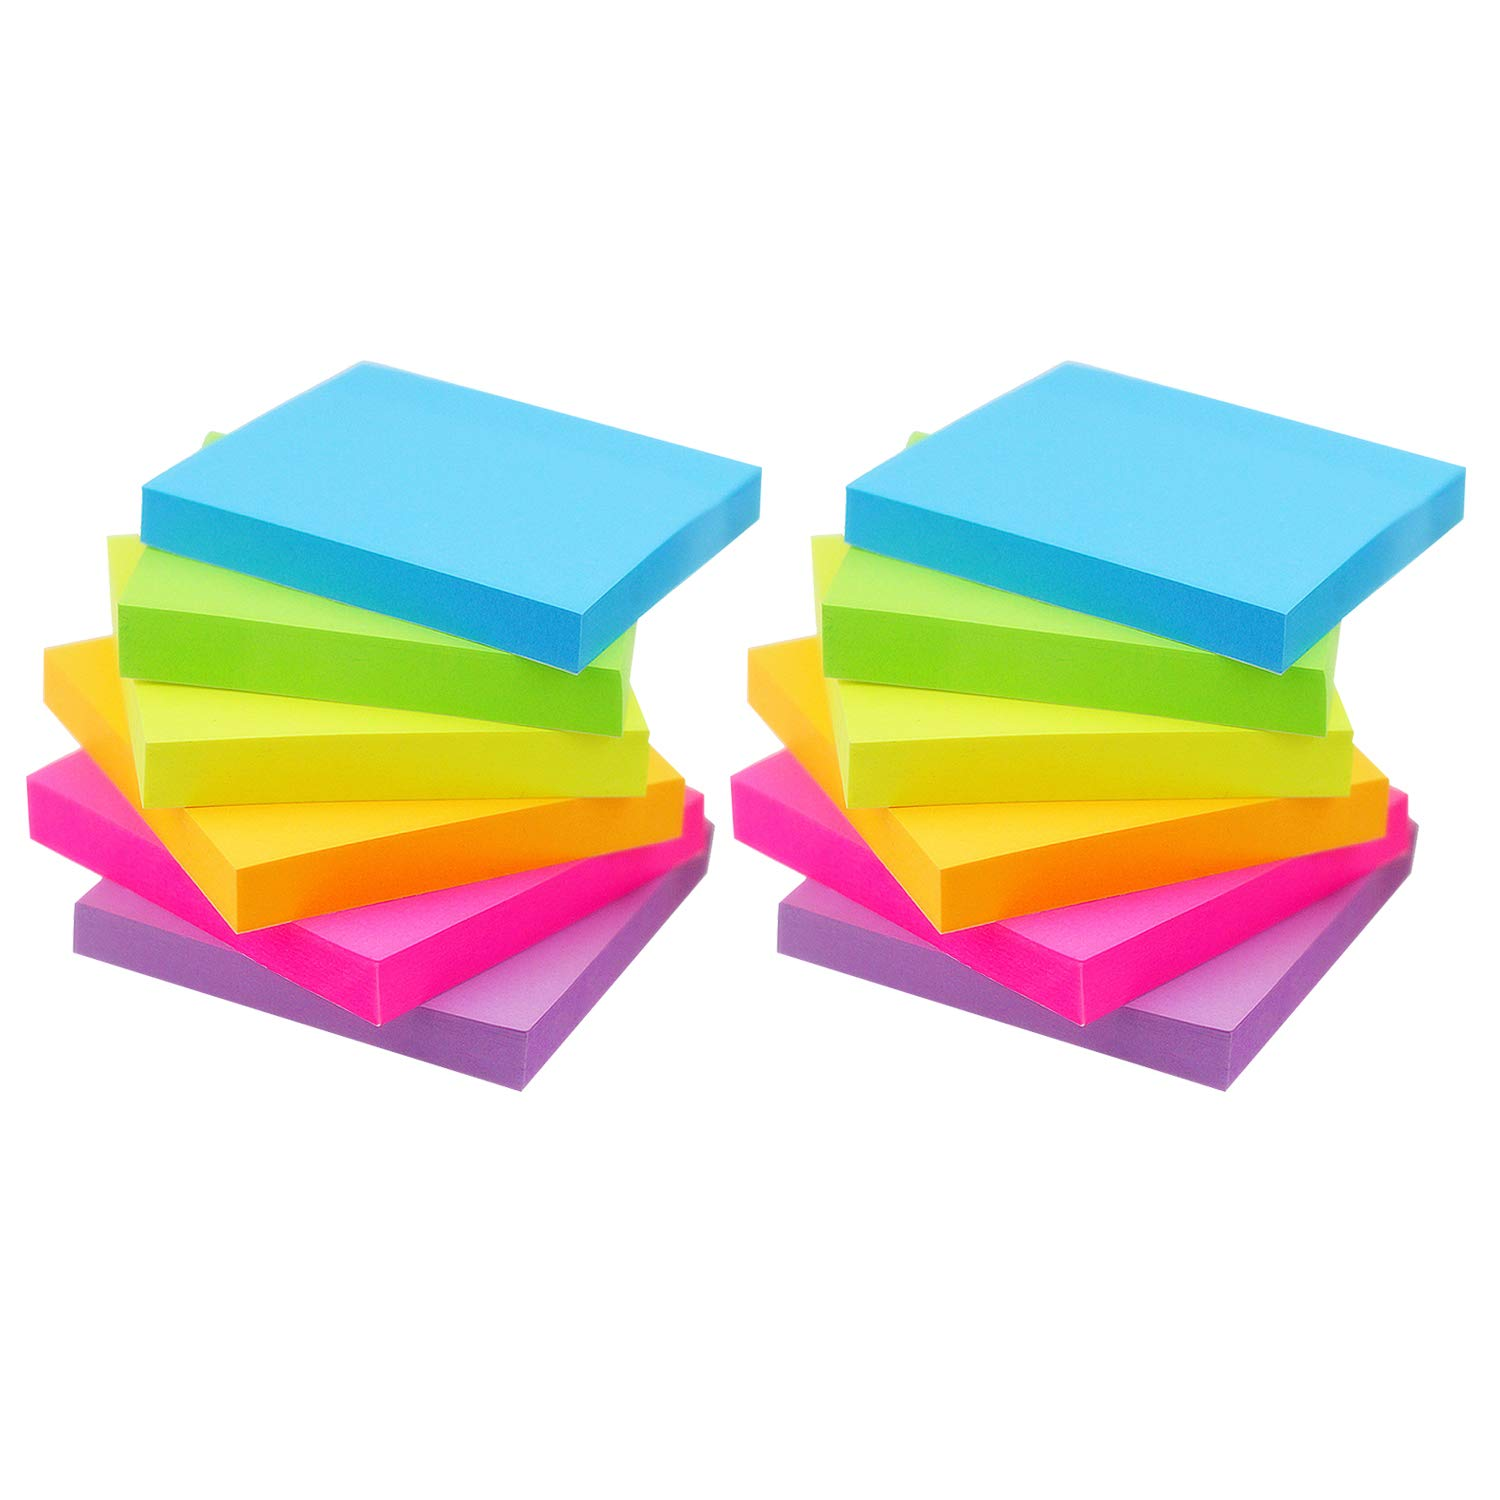 Early Buy Sticky Notes 6 Bright Color 12 Pads Self-Stick Notes 3 in x 3 in, 100 Sheets/Pad (12)